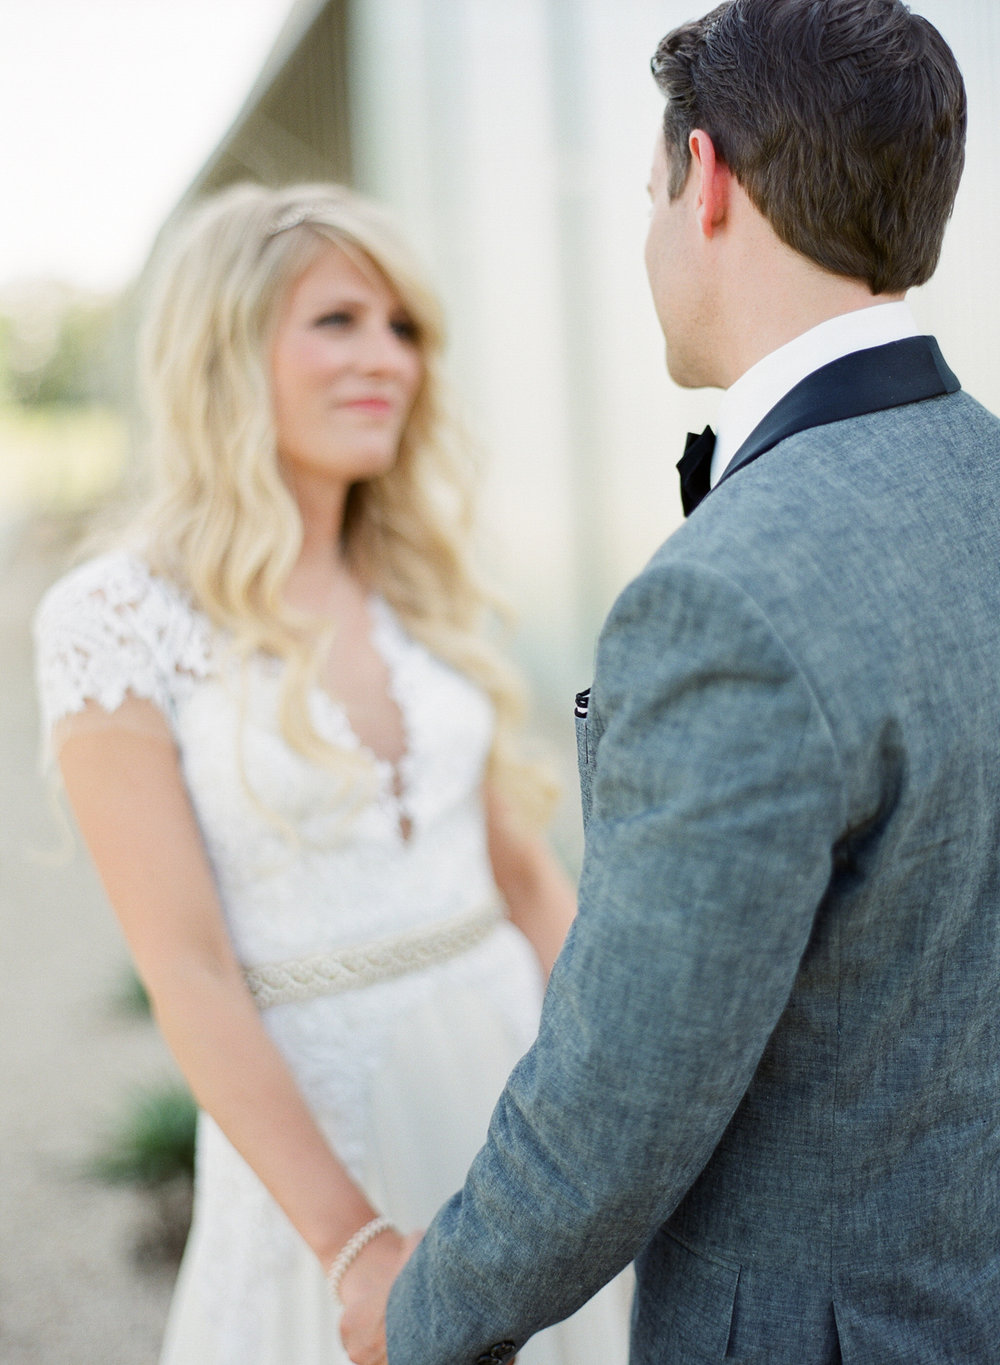 PROSPECT_HOUSE_WEDDING_AUSTIN_TX_BY_MATTHEW_MOORE_PHOTOGRAPHY_00095.jpg